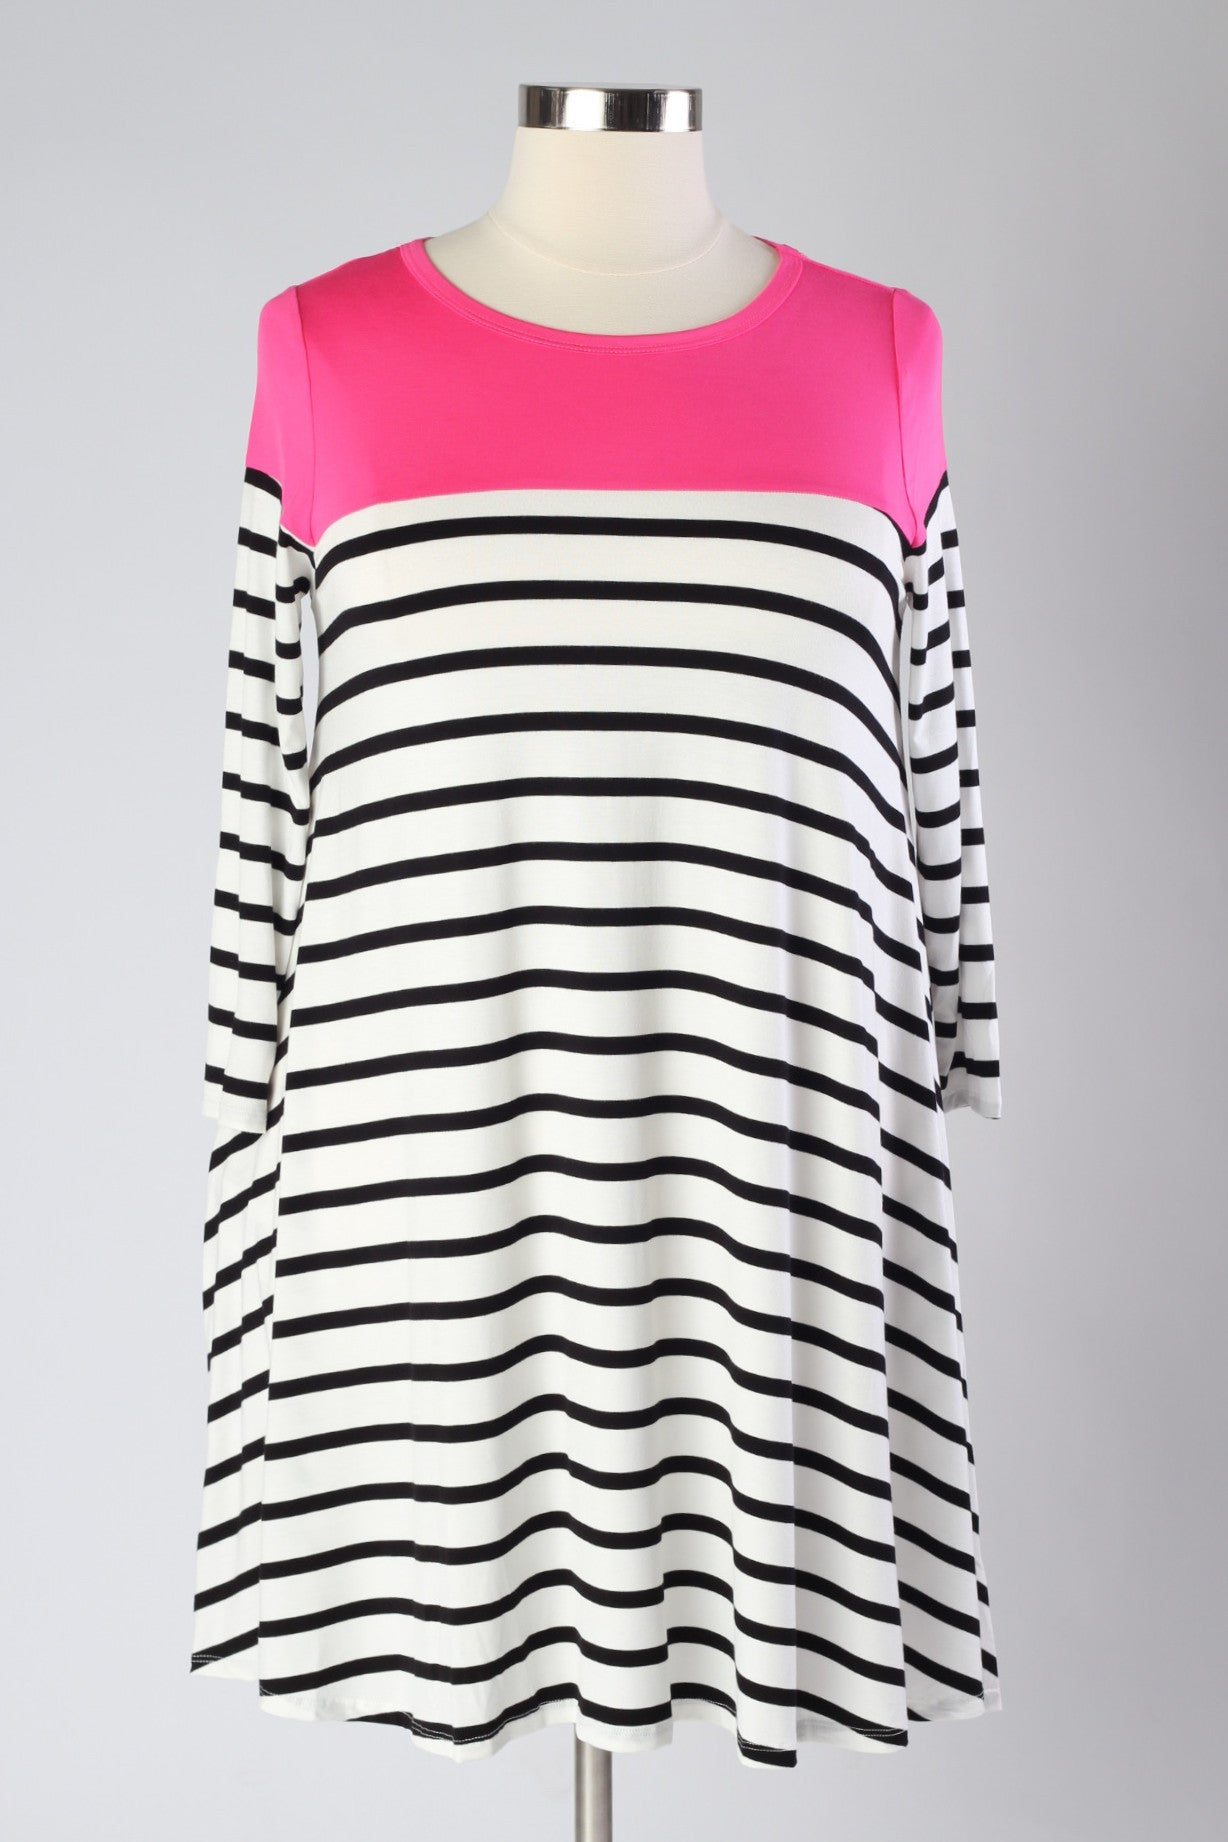 95% Rayon, 5% Spandex Hand wash cold Made in USA Length Arm hole Wrist opening Size: 14/16 37